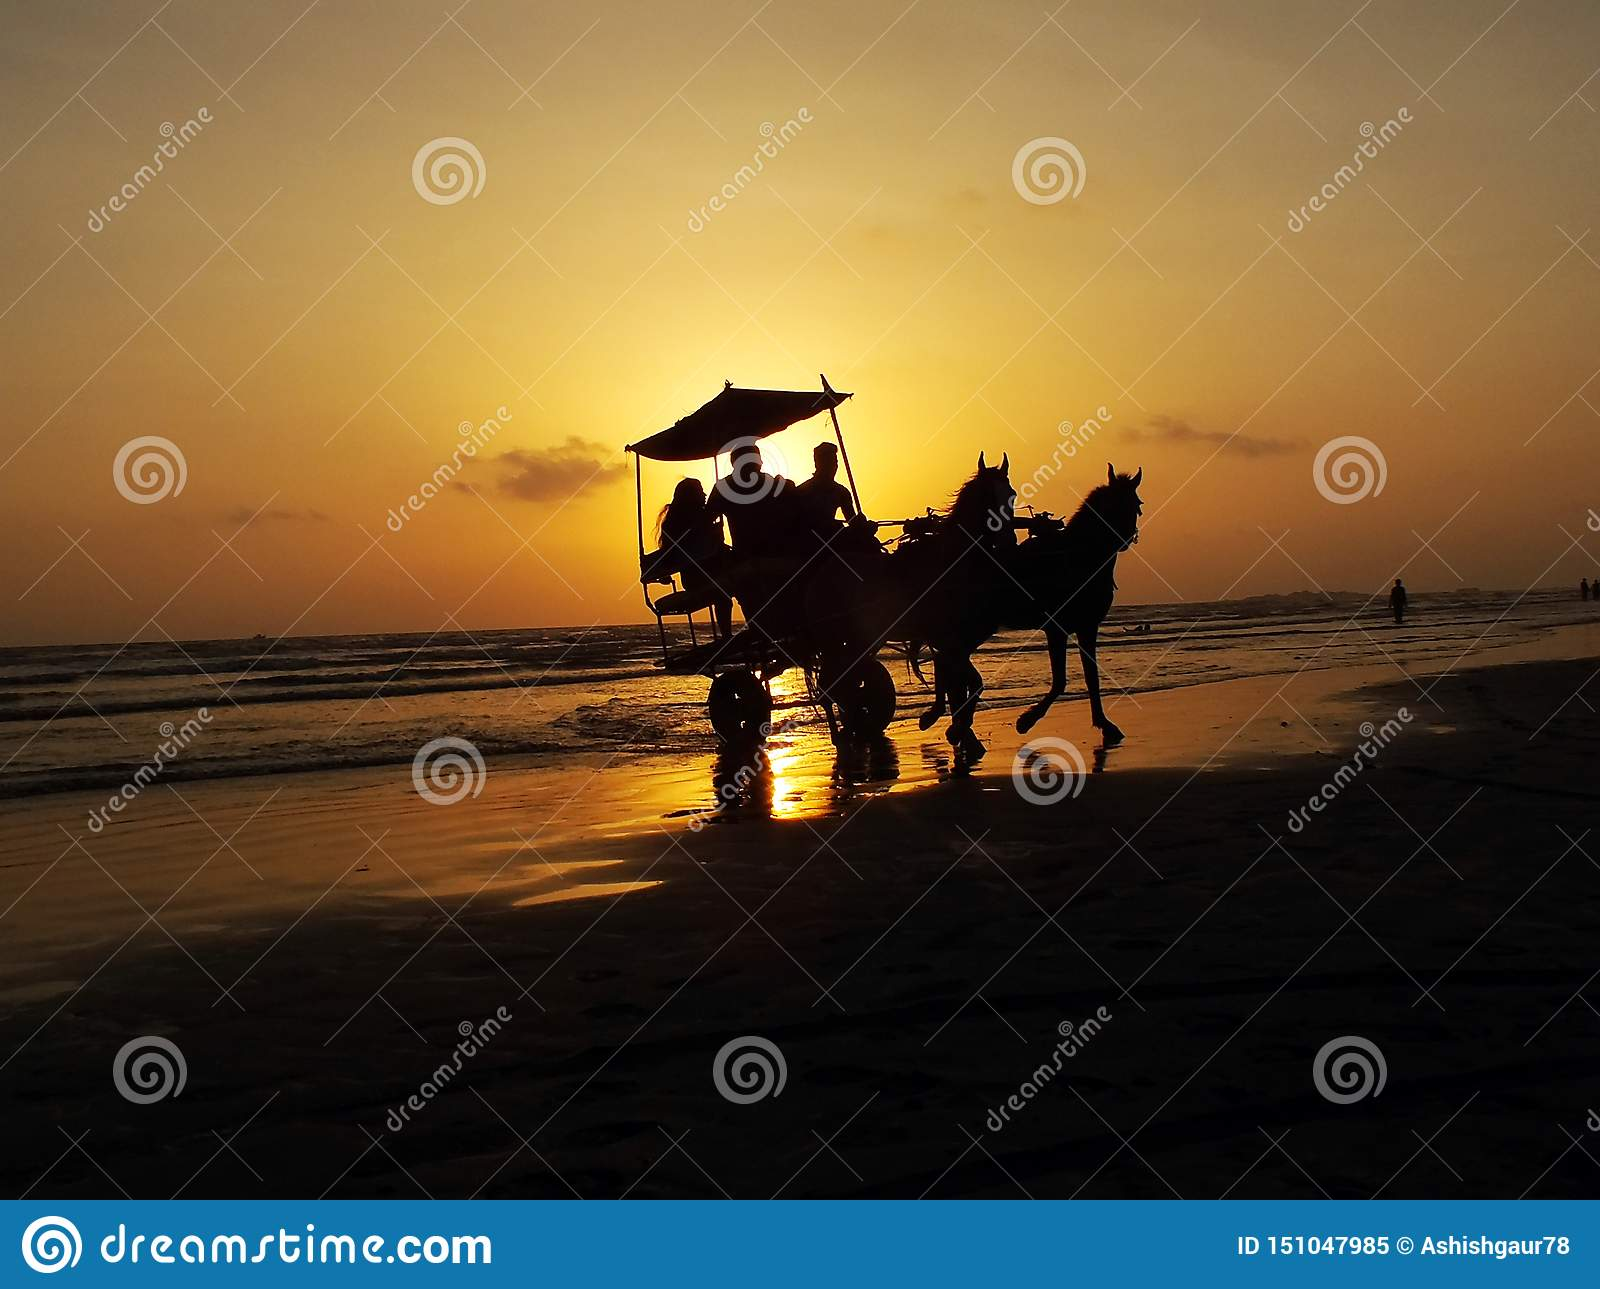 People sitting in horse chariot on sea beach